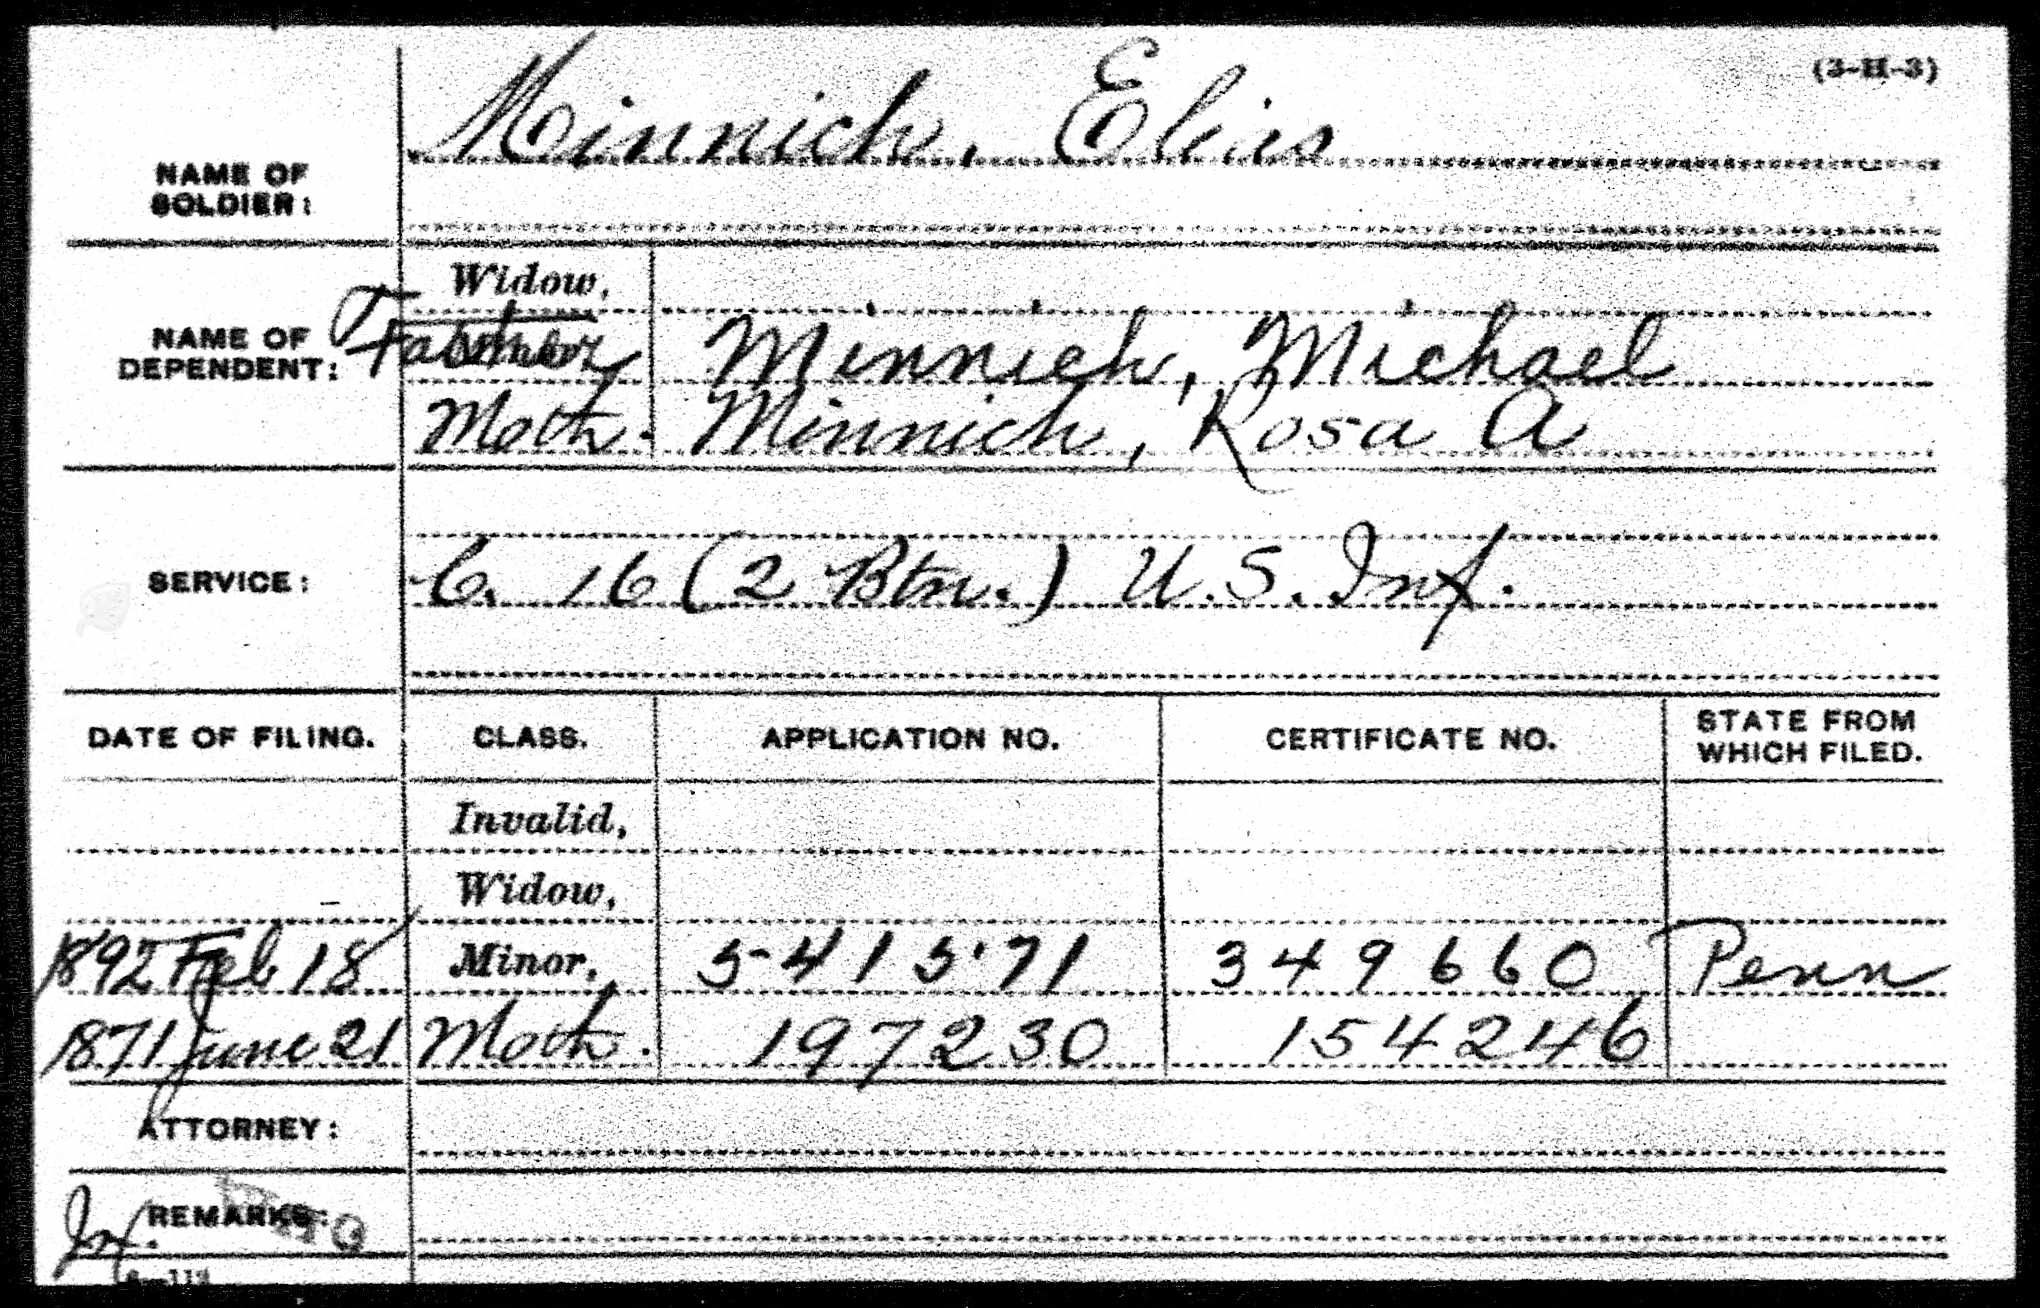 Fresh pictures of birth certificate georgia business cards and civil war blog elias minnich killed in action near marietta aiddatafo Images